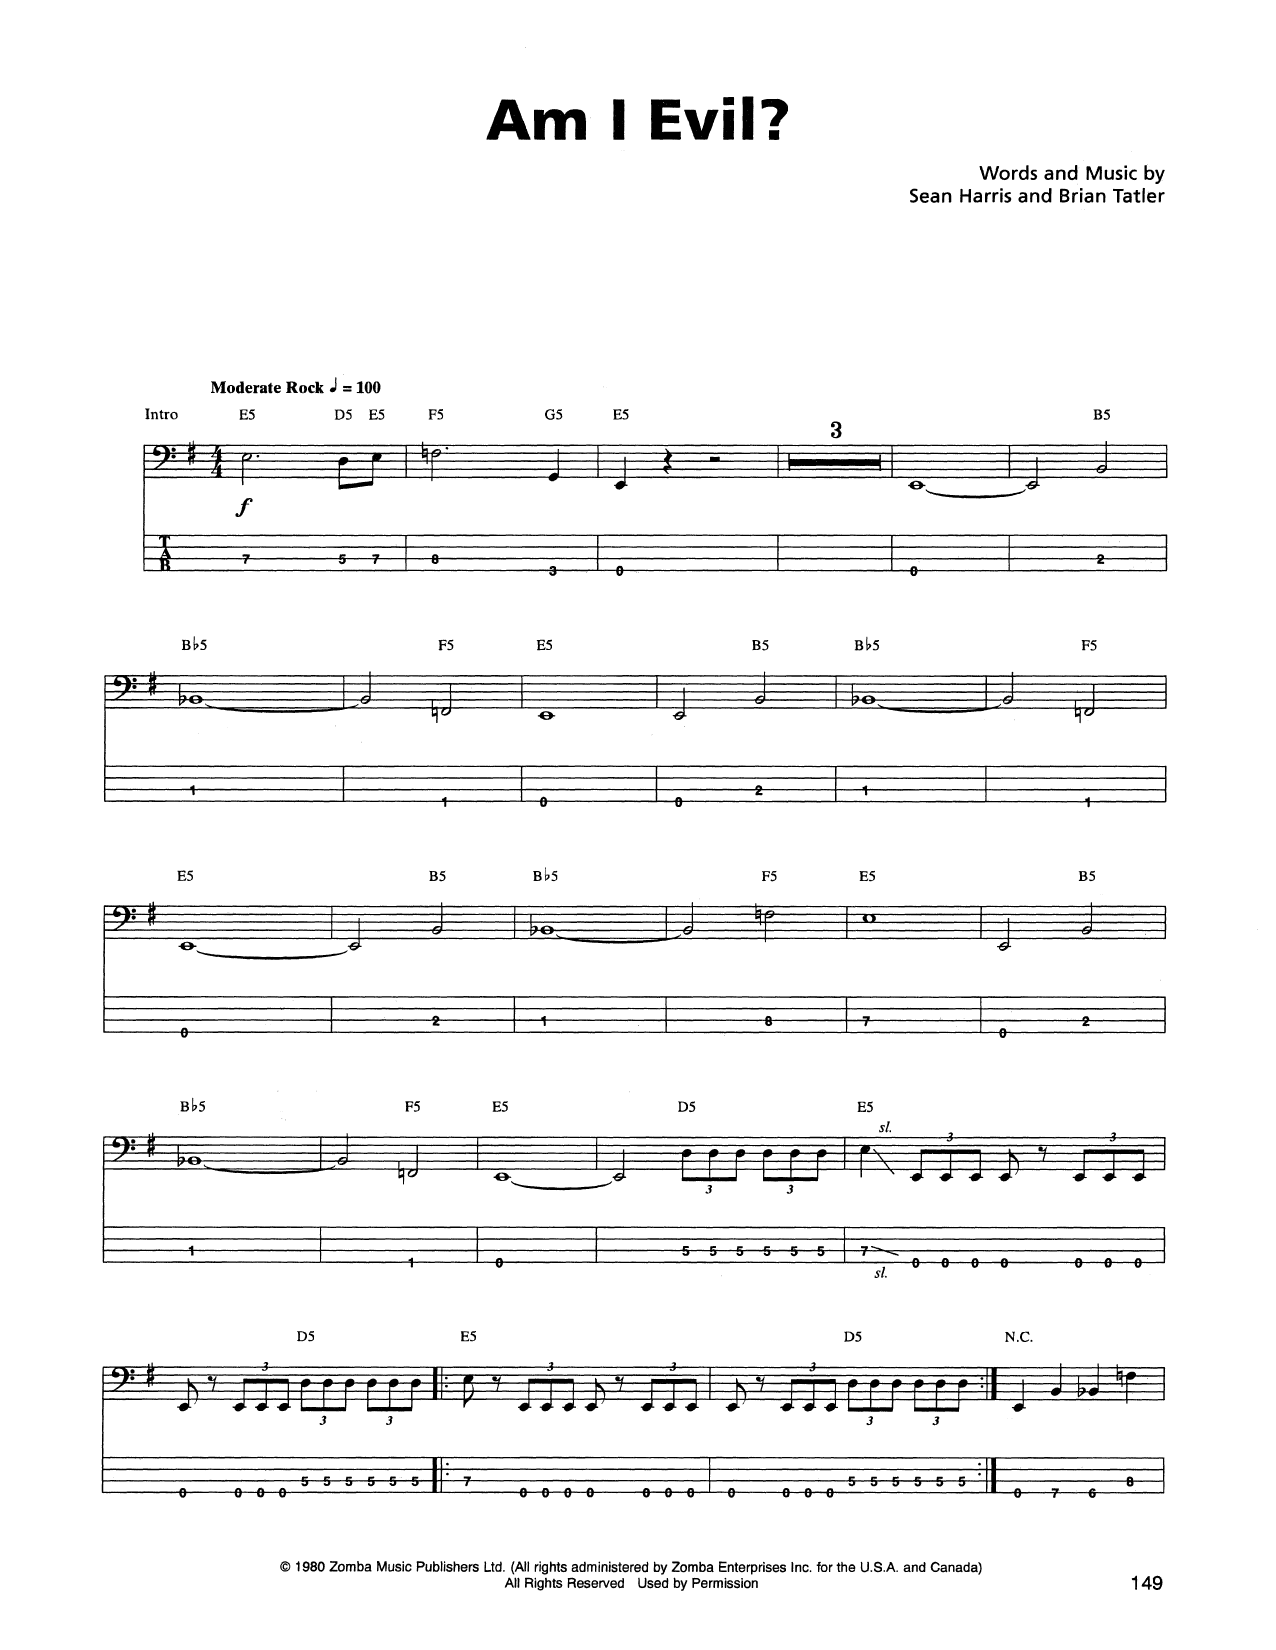 Am I Evil? Sheet Music